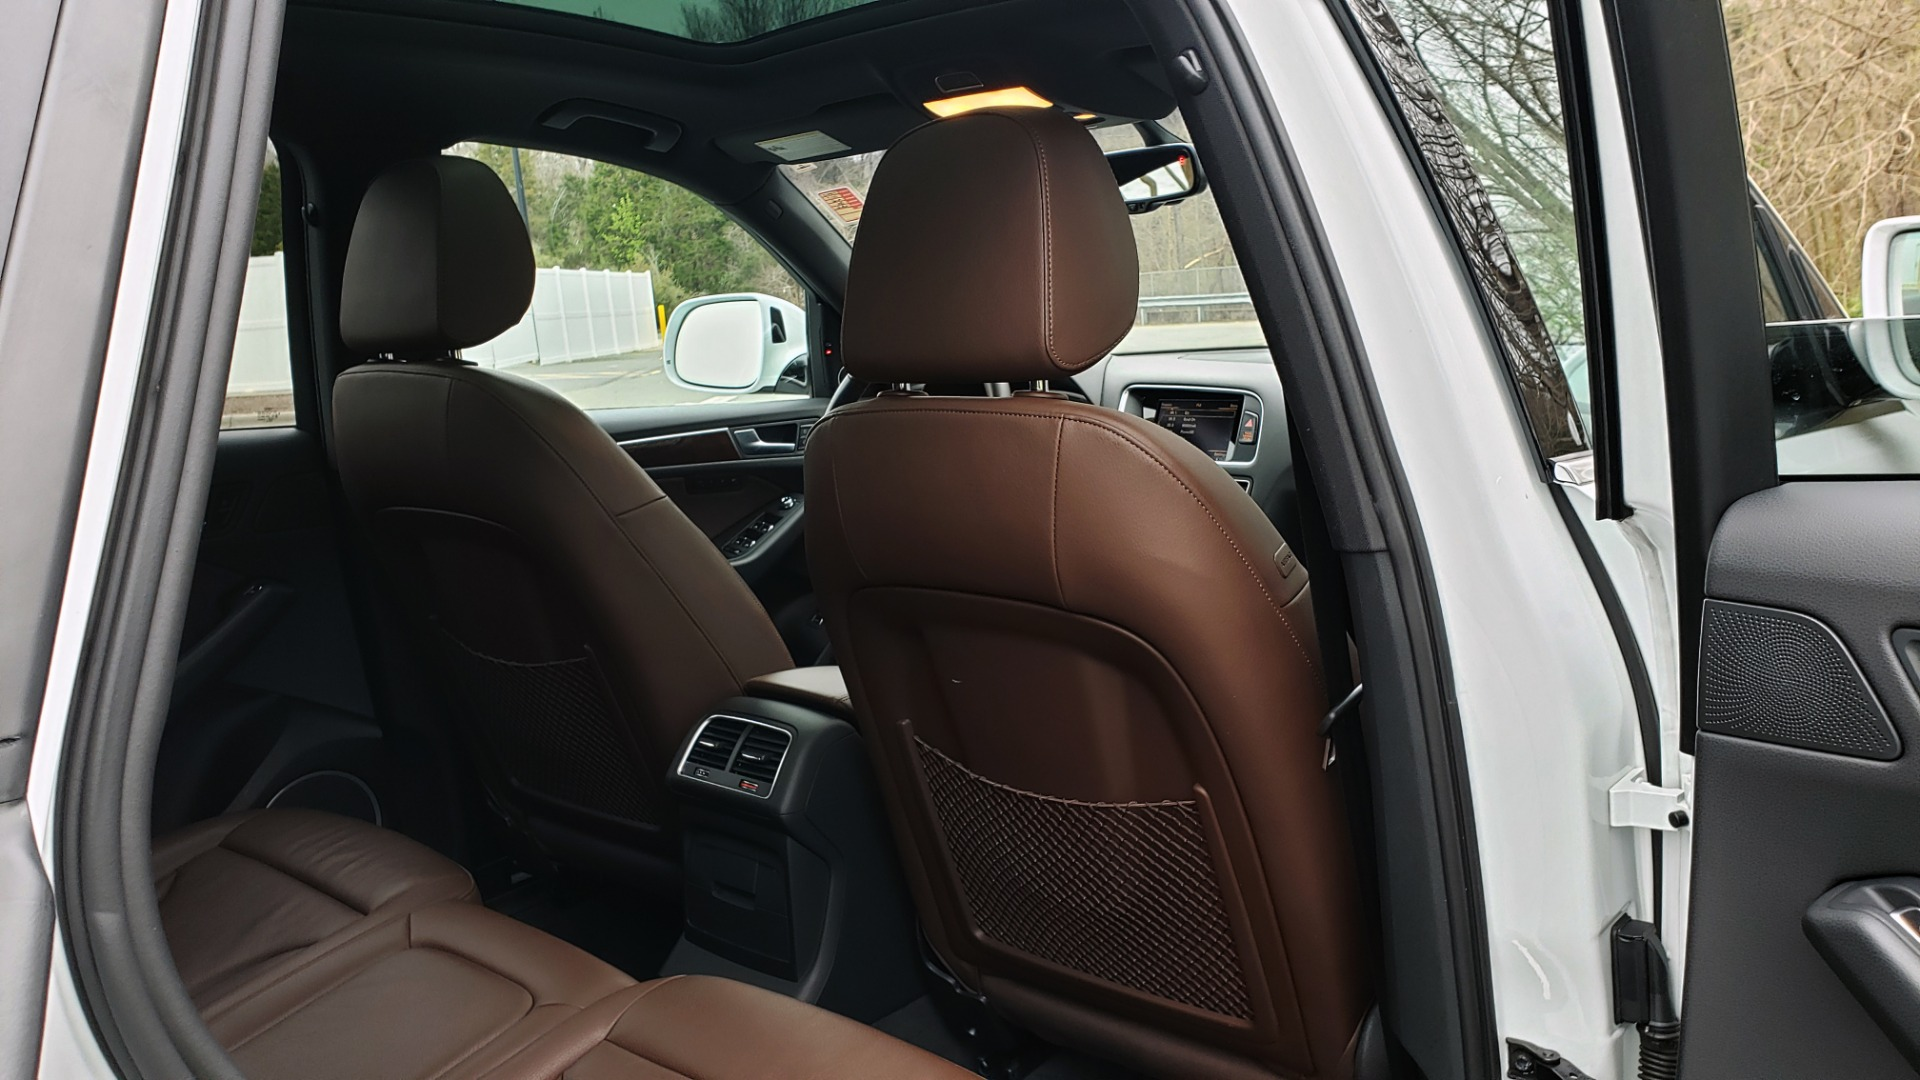 Used 2017 Audi Q5 PREMIUM PLUS / TECH / NAV / PANO-ROOF / B&O SND / REARVIEW for sale Sold at Formula Imports in Charlotte NC 28227 80